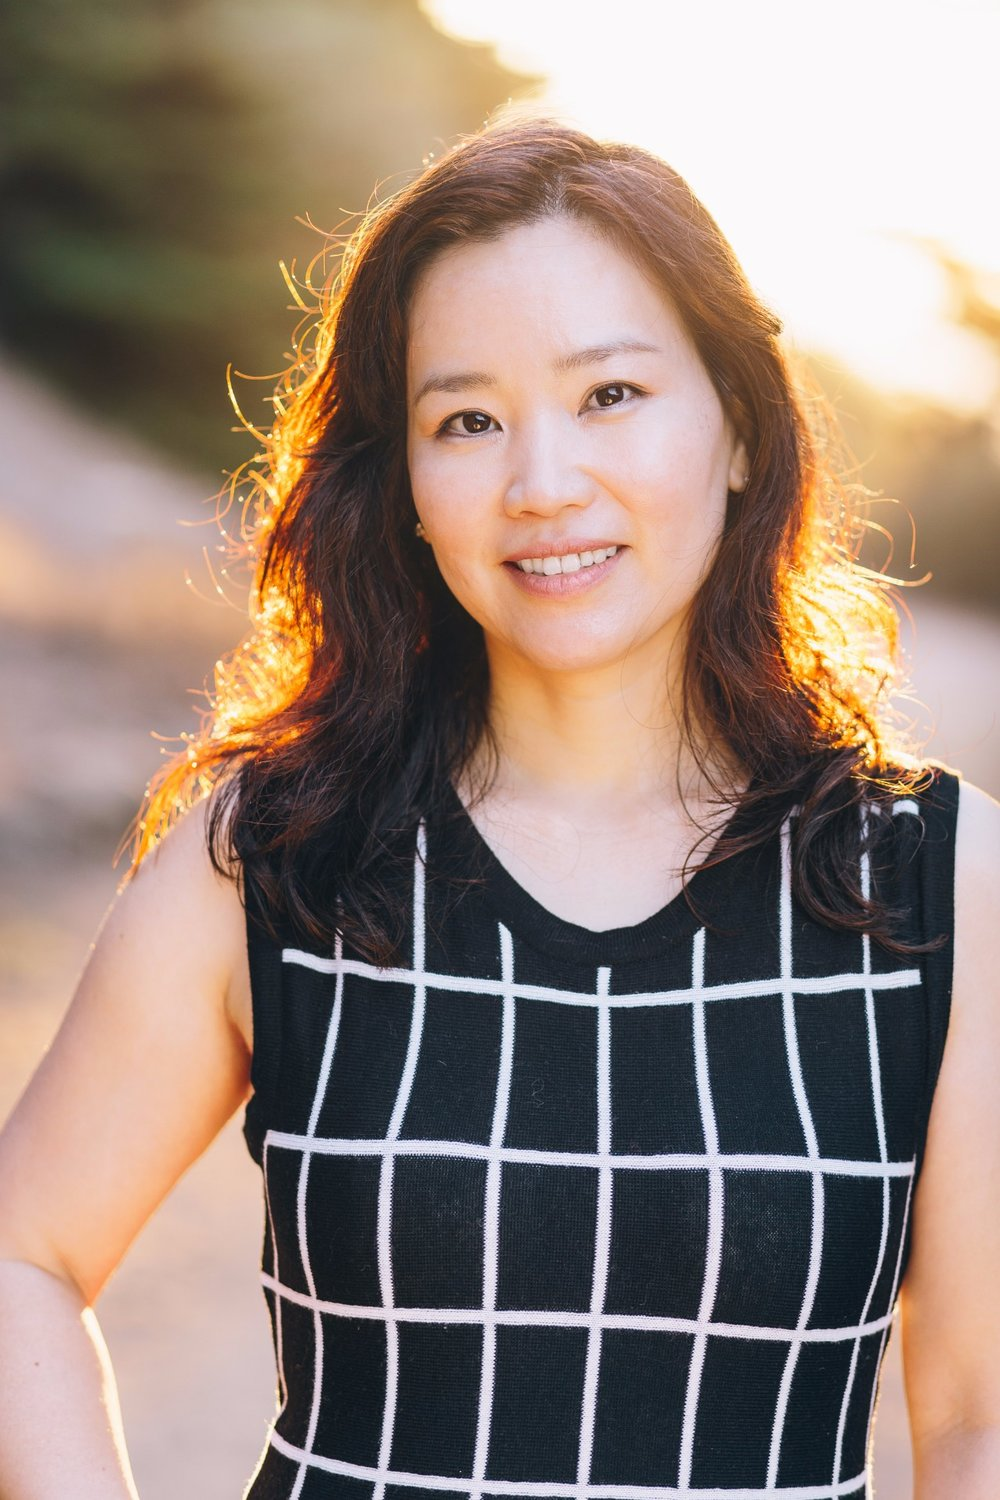 Professional Headshots in San Francisco - Corporate Photographer in SF - JBJ Pictures (5).jpg